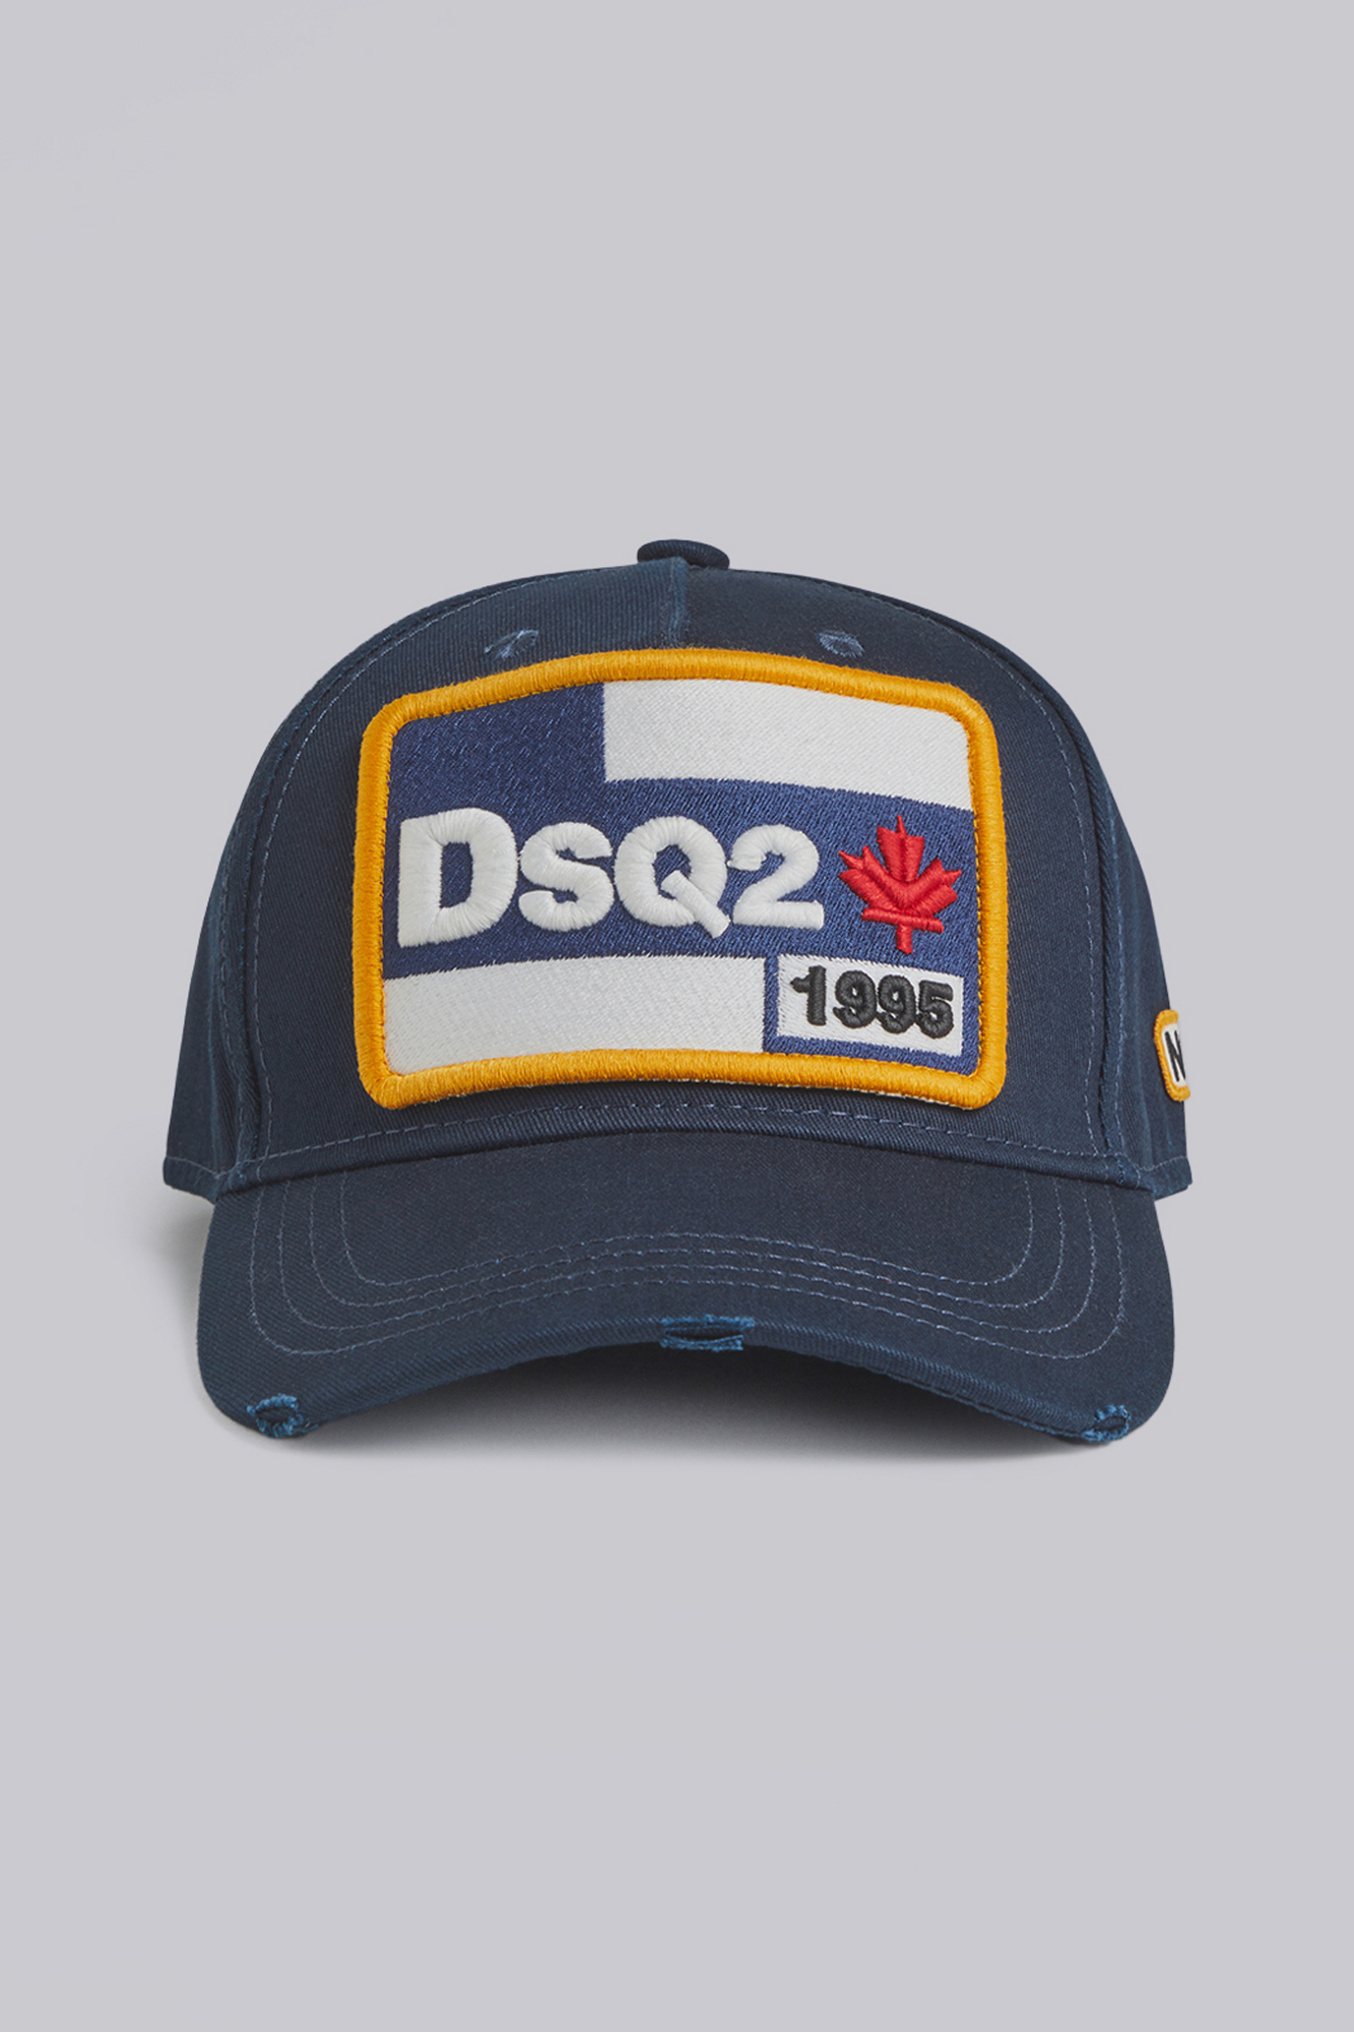 Dsquared2's cotton twill cap in navy.